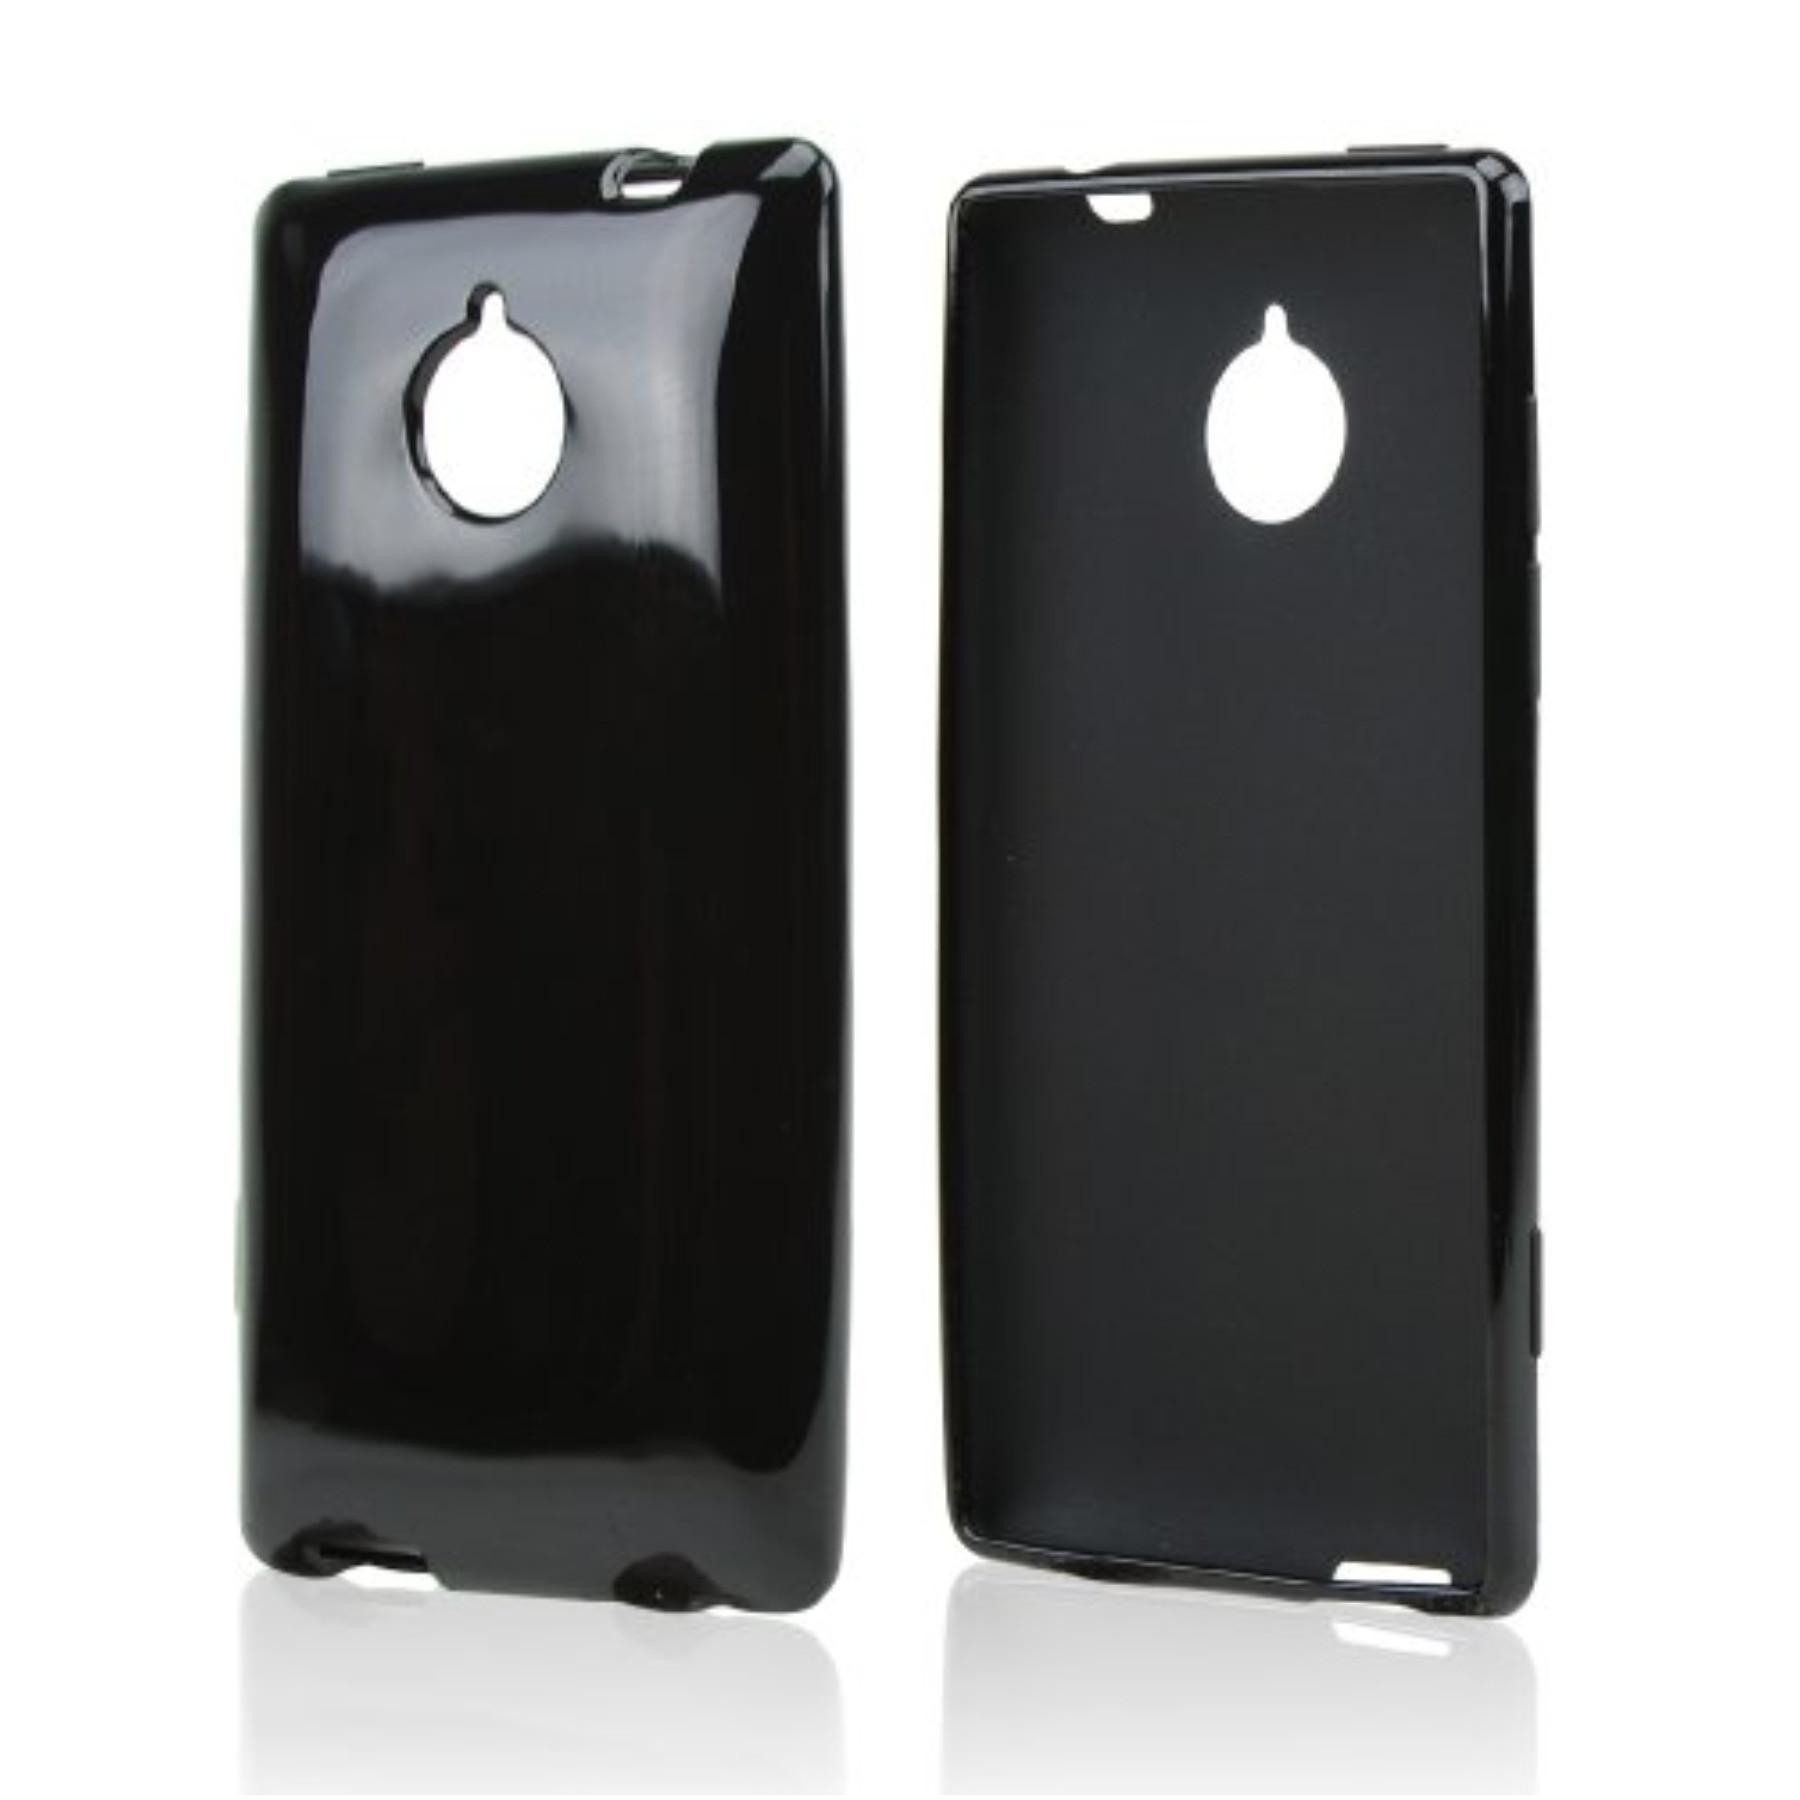 Karendeals Black Htc 8xt Tpu Gel Case Cover Anti Slip